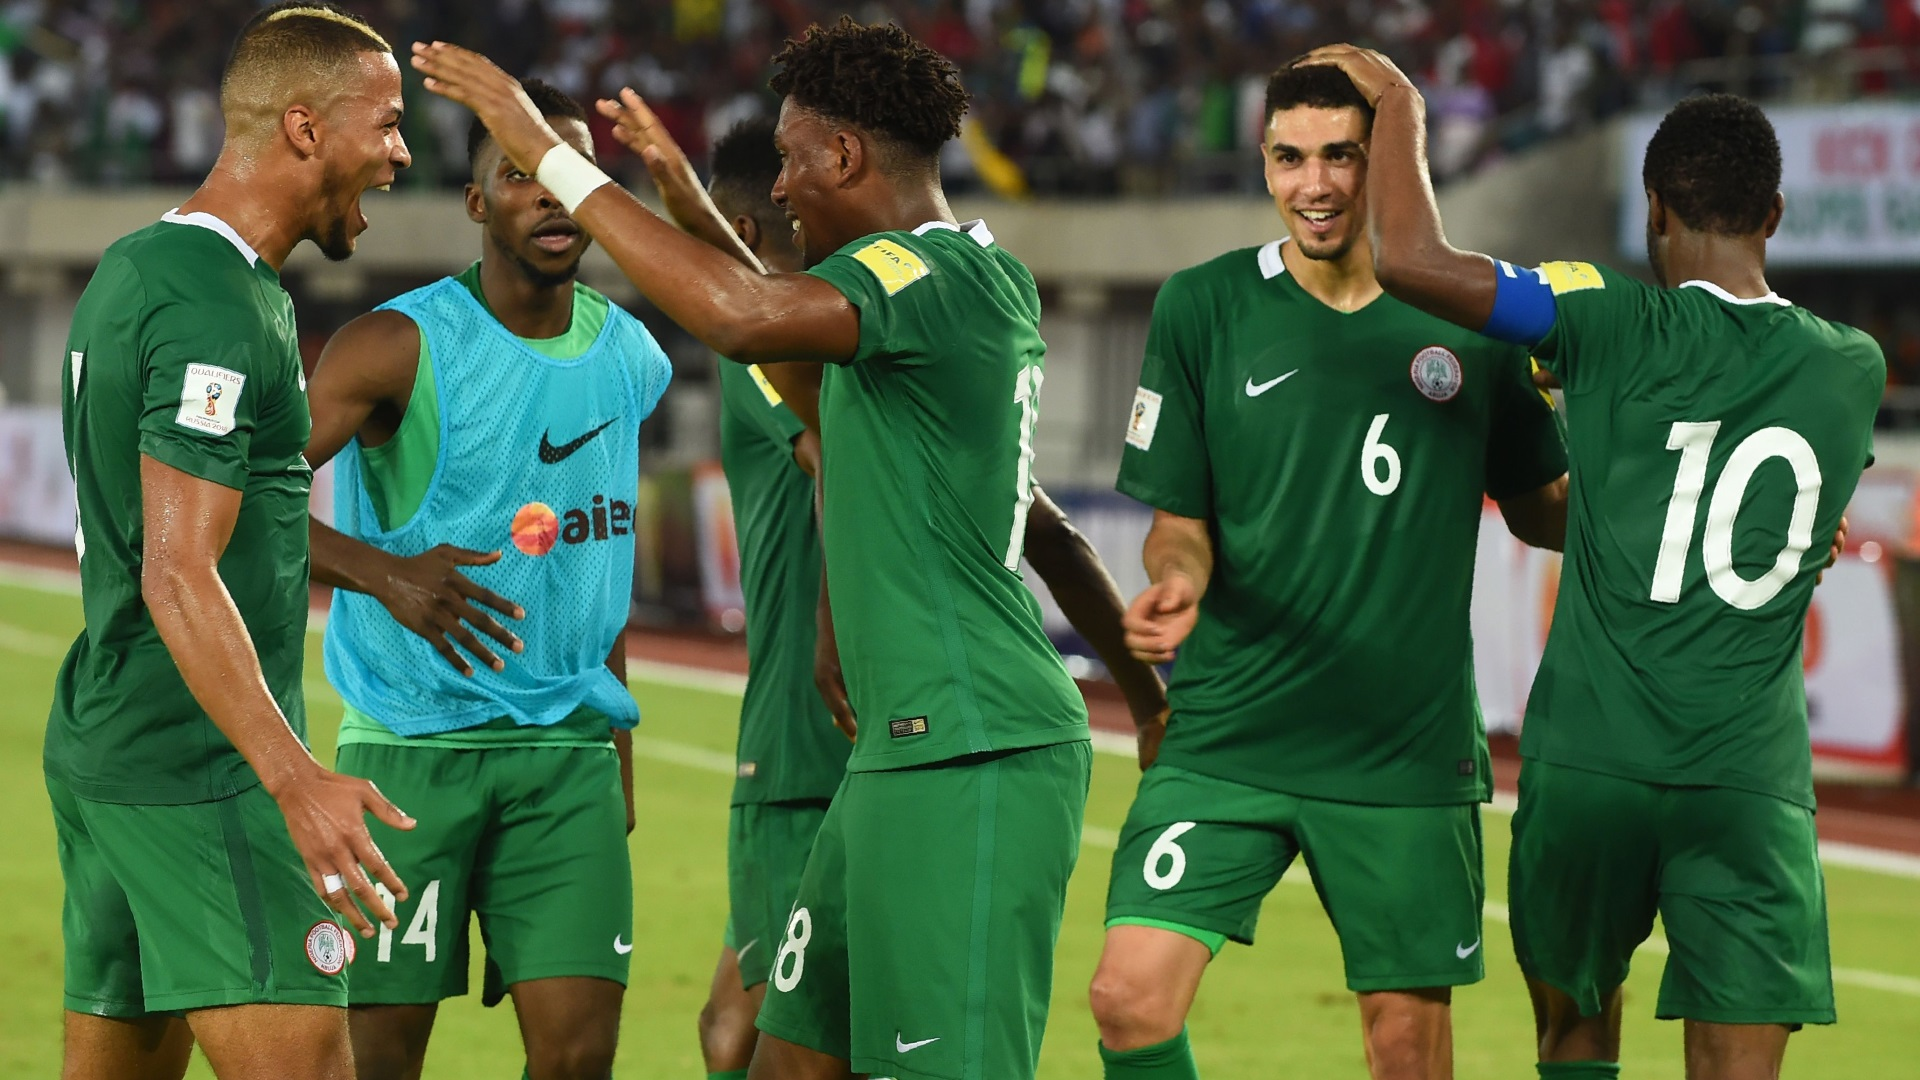 Nigeria's World Cup hopes dependent on players' fitness, says Leon Balogun